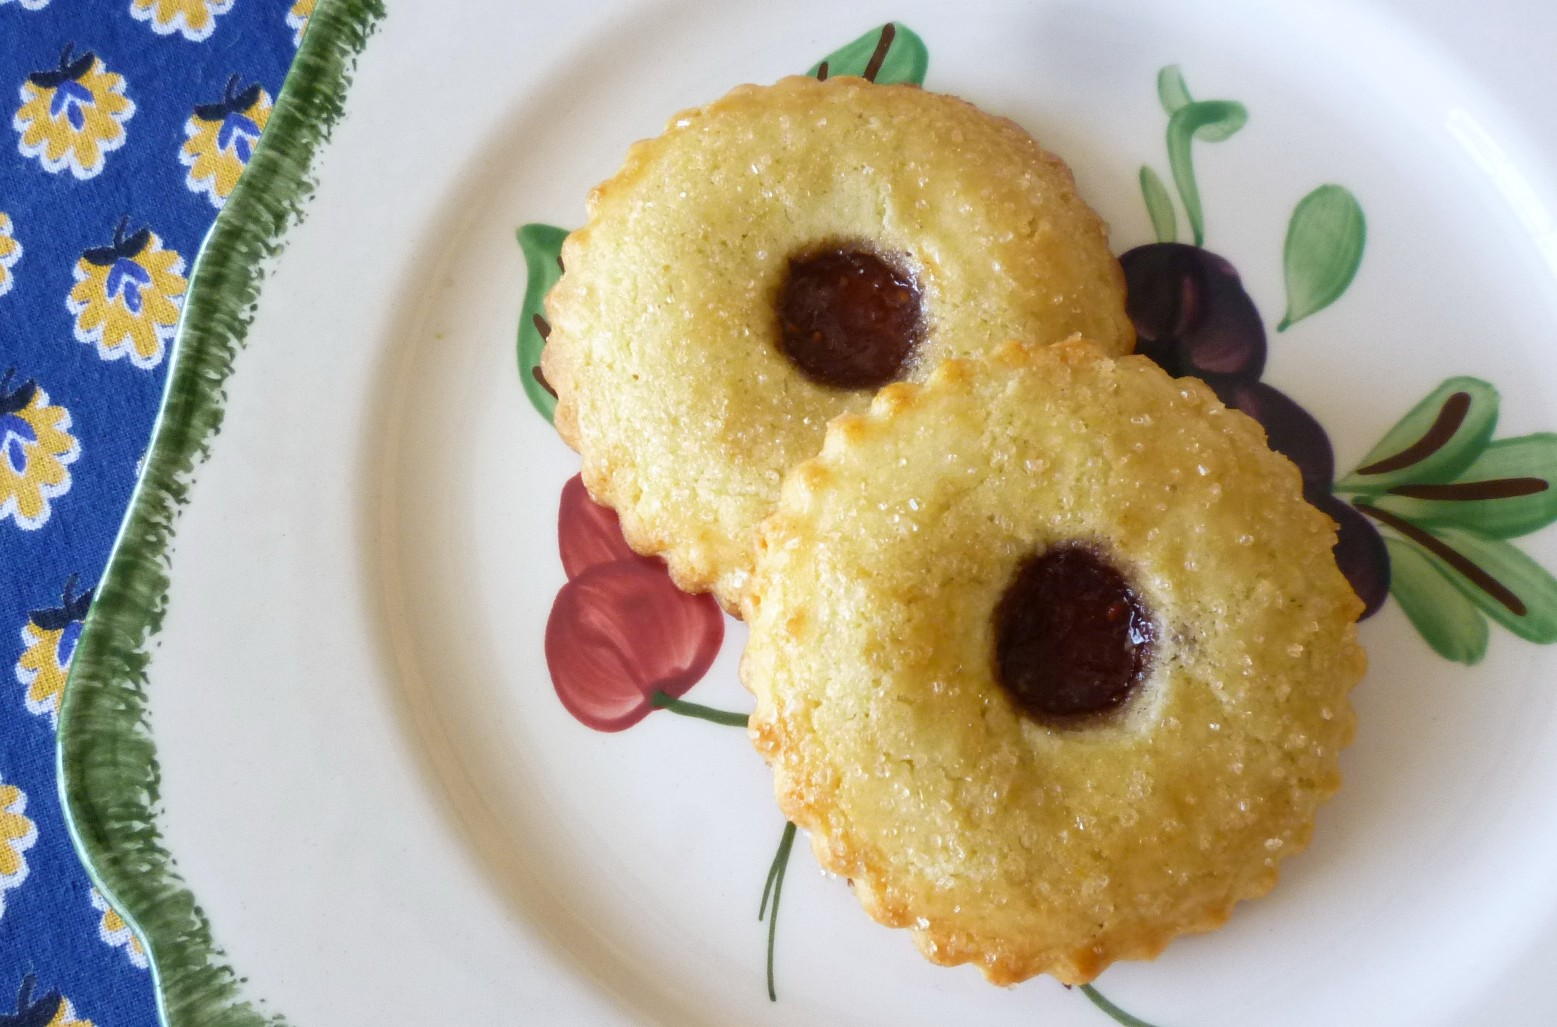 ... of the Table: Jam Filled Sugar Cookies and an Italian-style Jam Tart